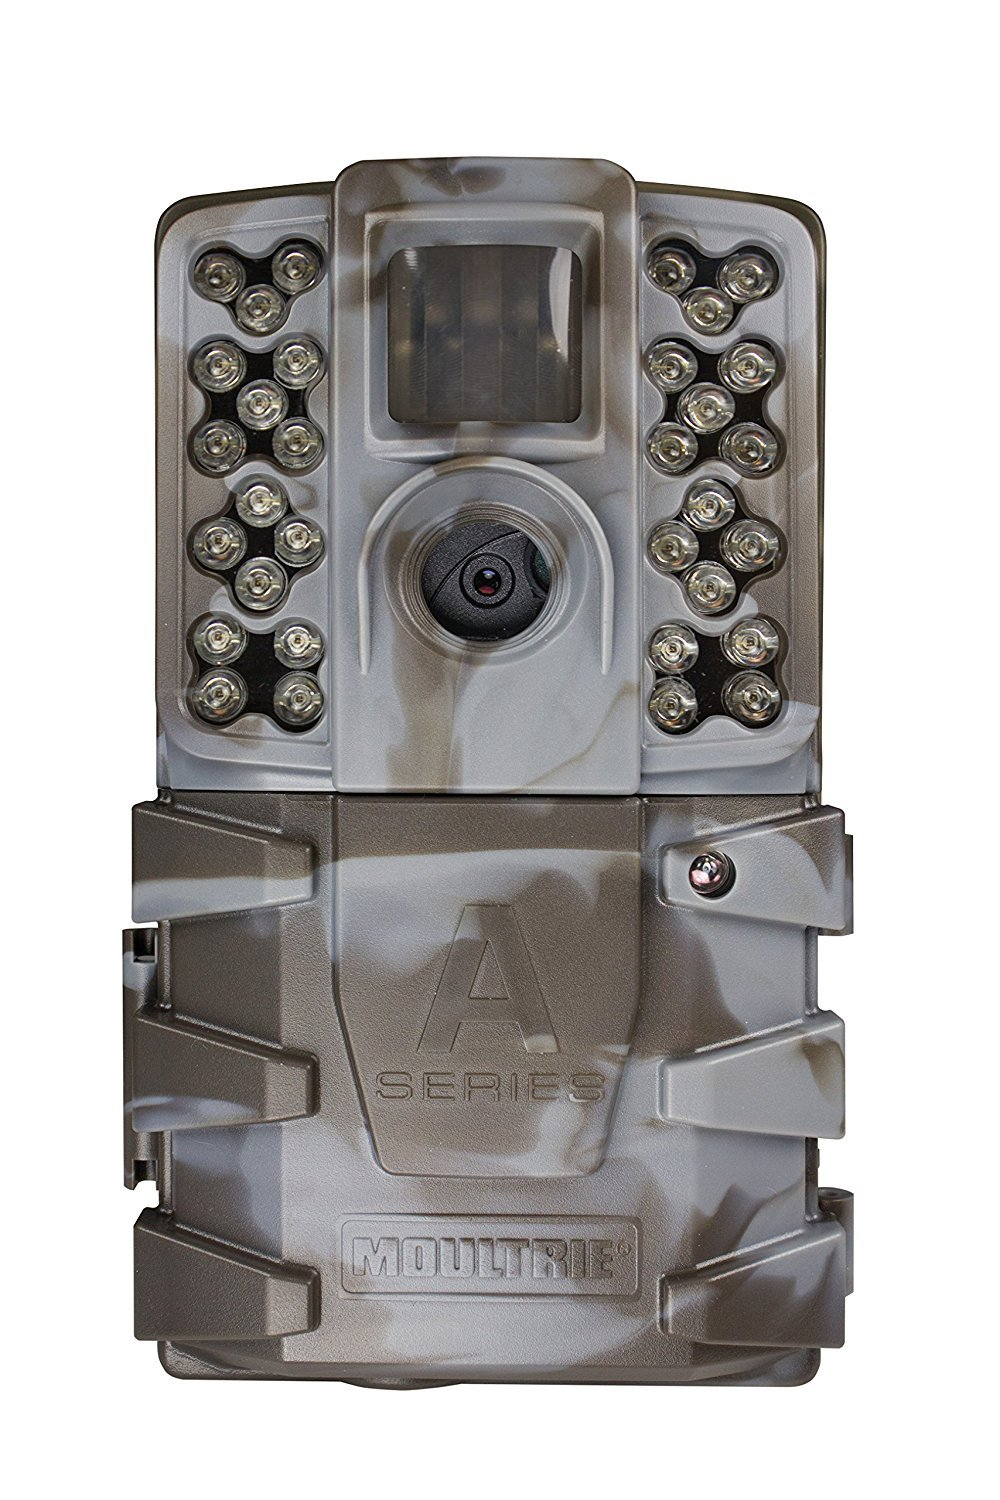 Moultrie A-35 Trail Gaming Camera